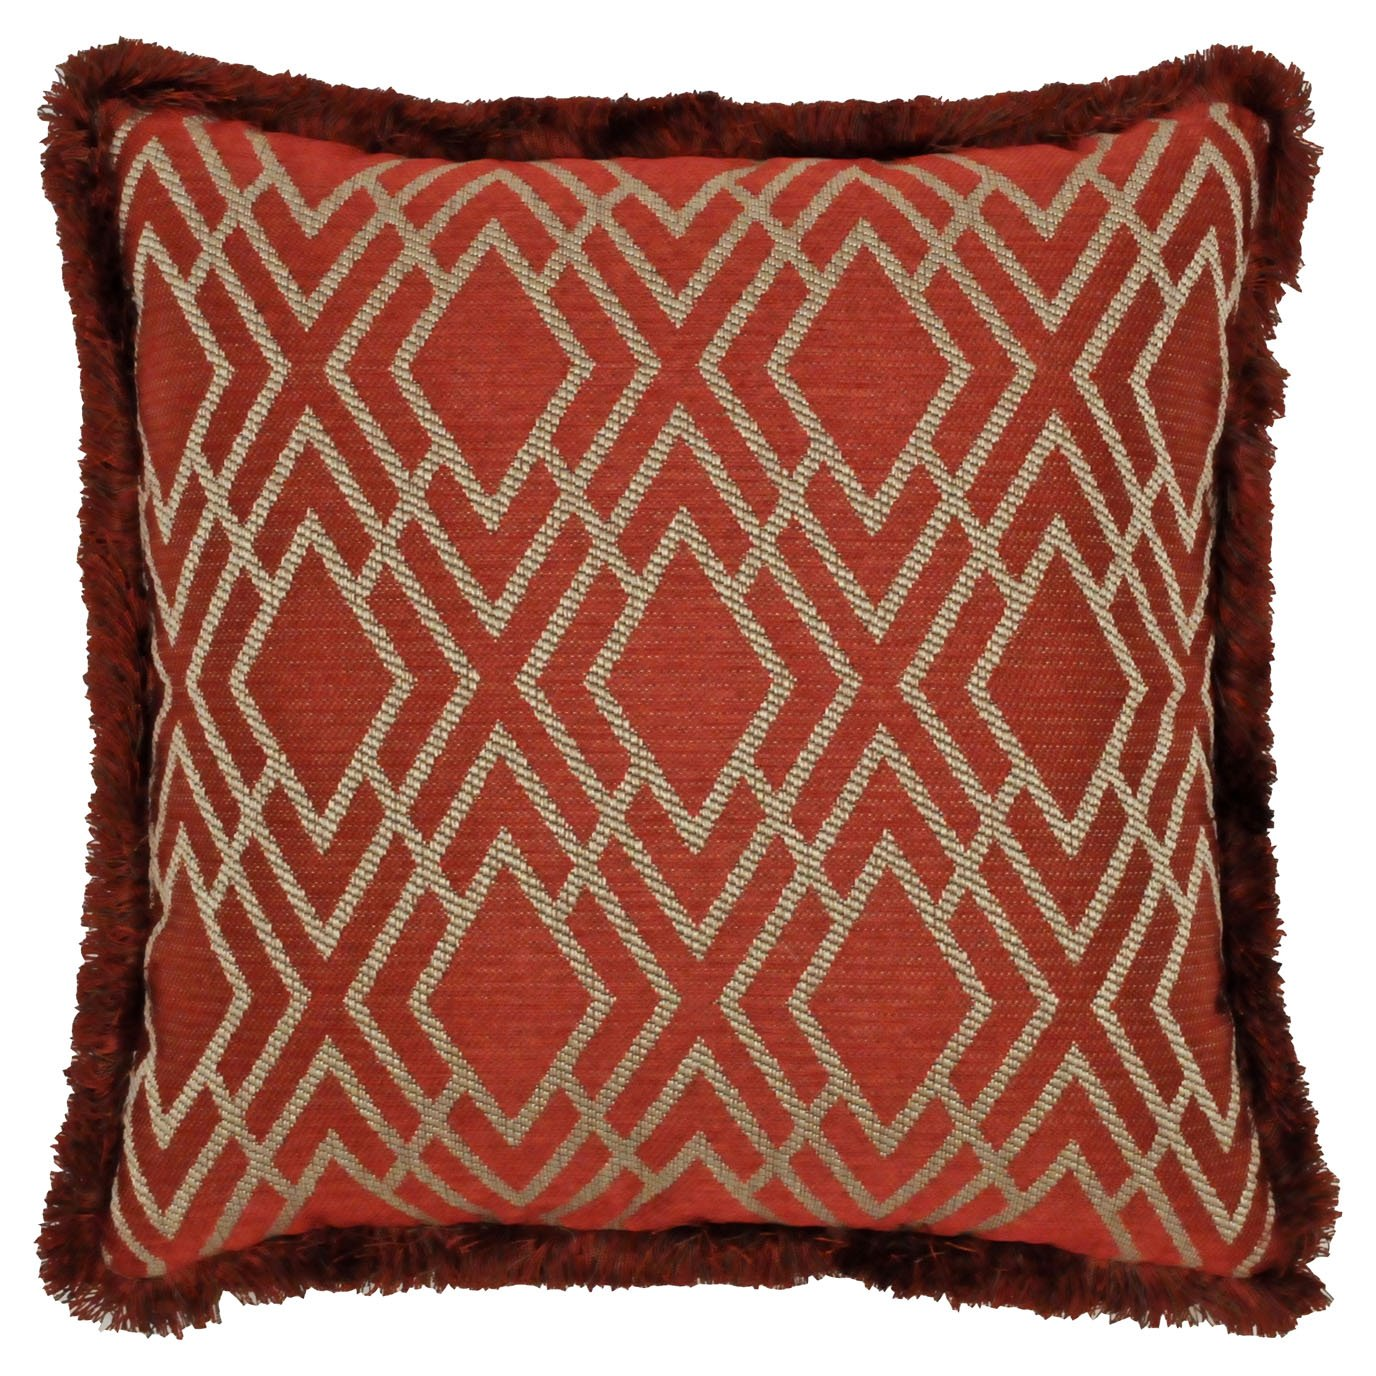 Harrogate Geometric Throw Pillow